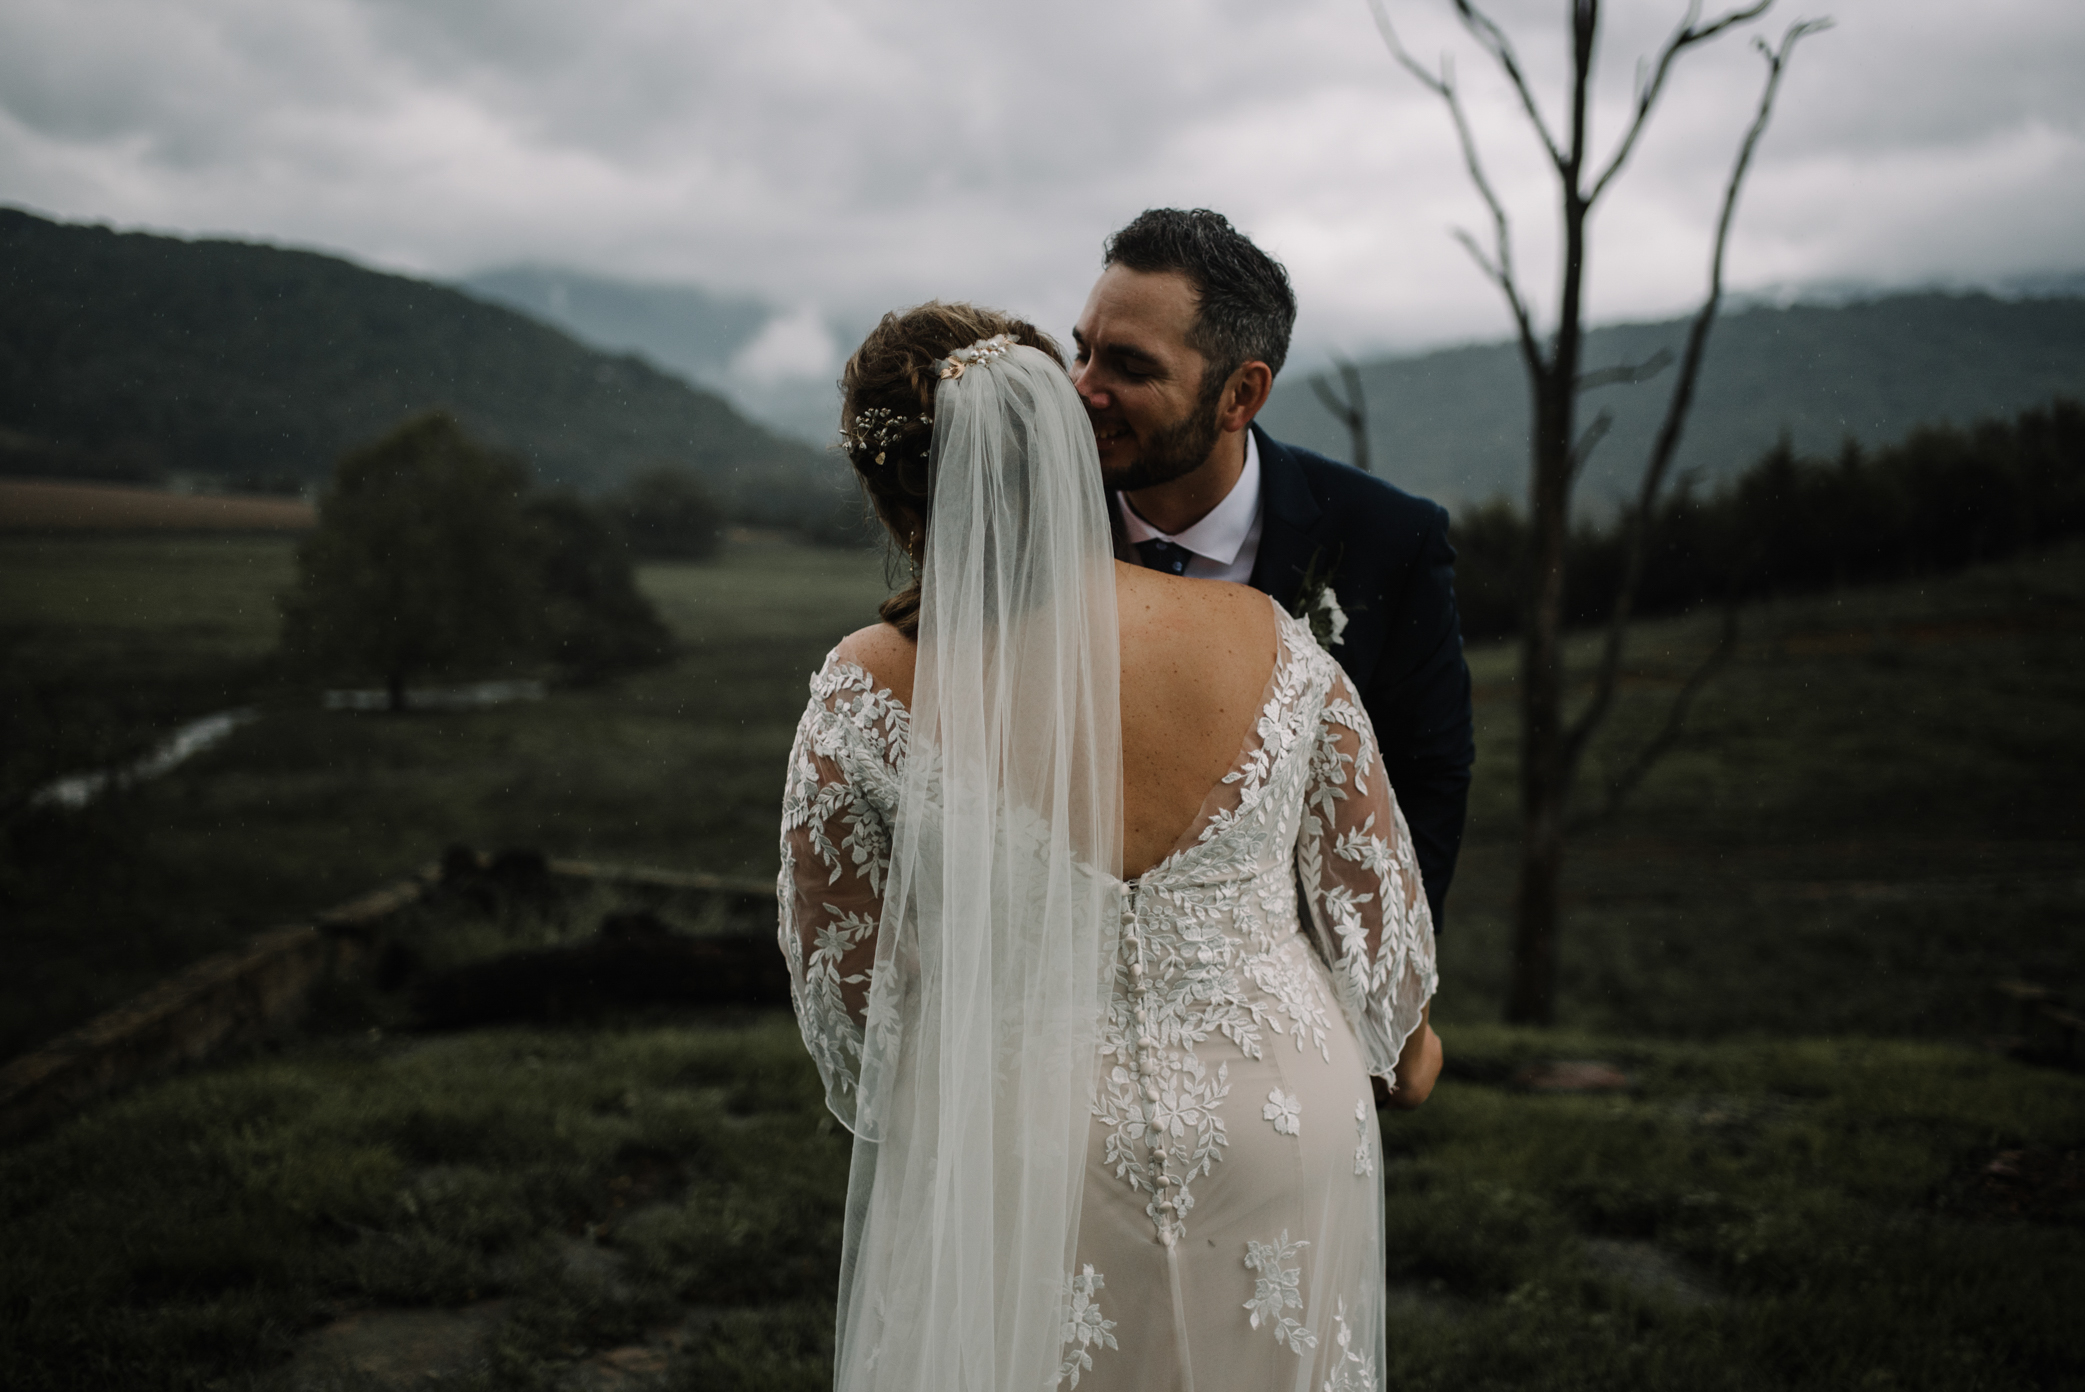 Jordan and Danielle - Shenandoah Woods Luray Virginia Wedding - Foggy Mountain and Forest Wedding - White Sails Creative Photography_86.JPG